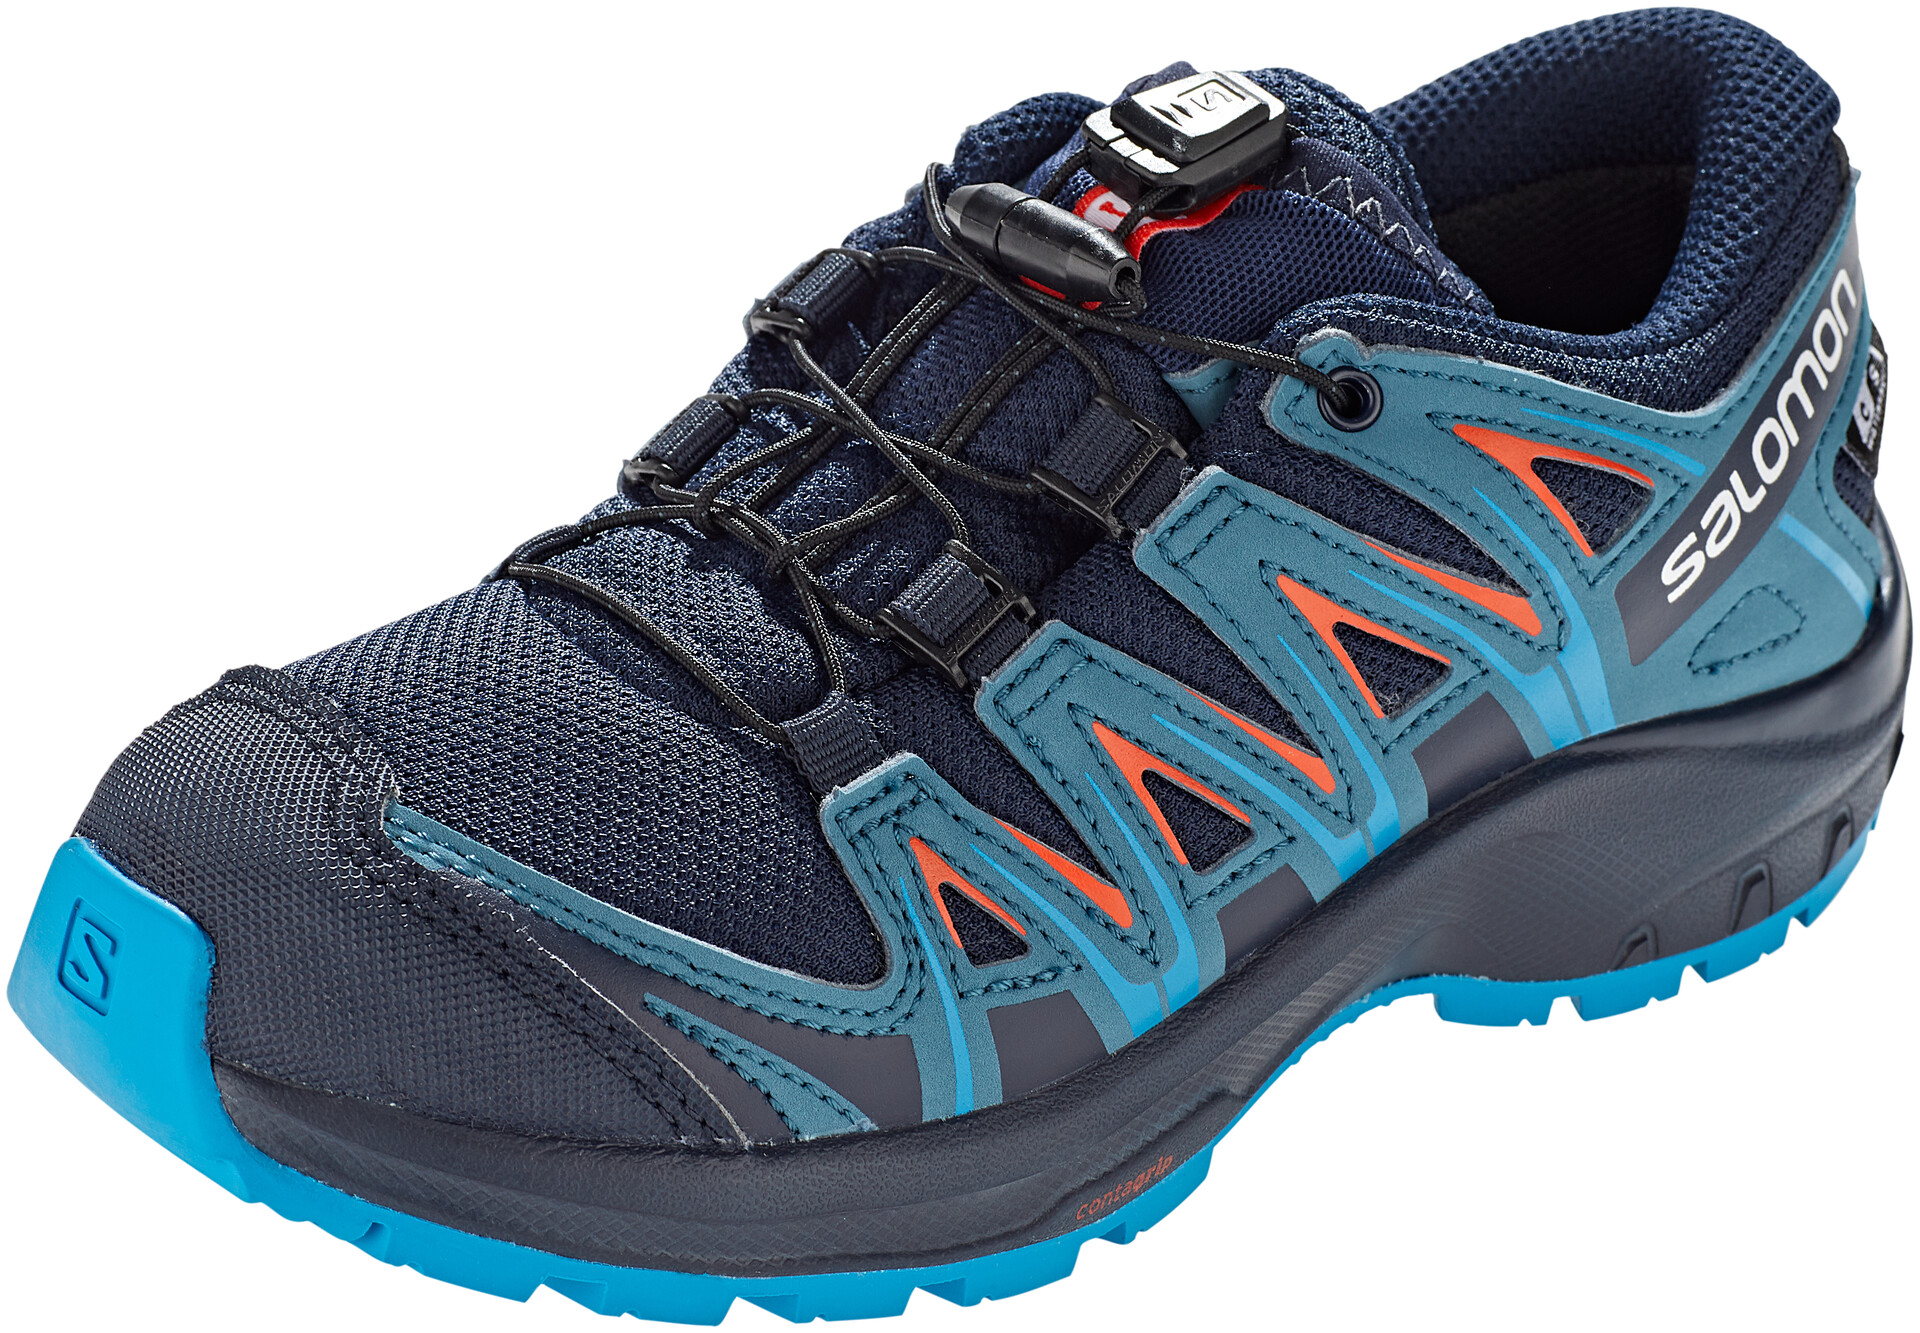 Salomon XA Pro 3D CSWP Chaussures Adolescents, navy blazermallard bluehawaiian